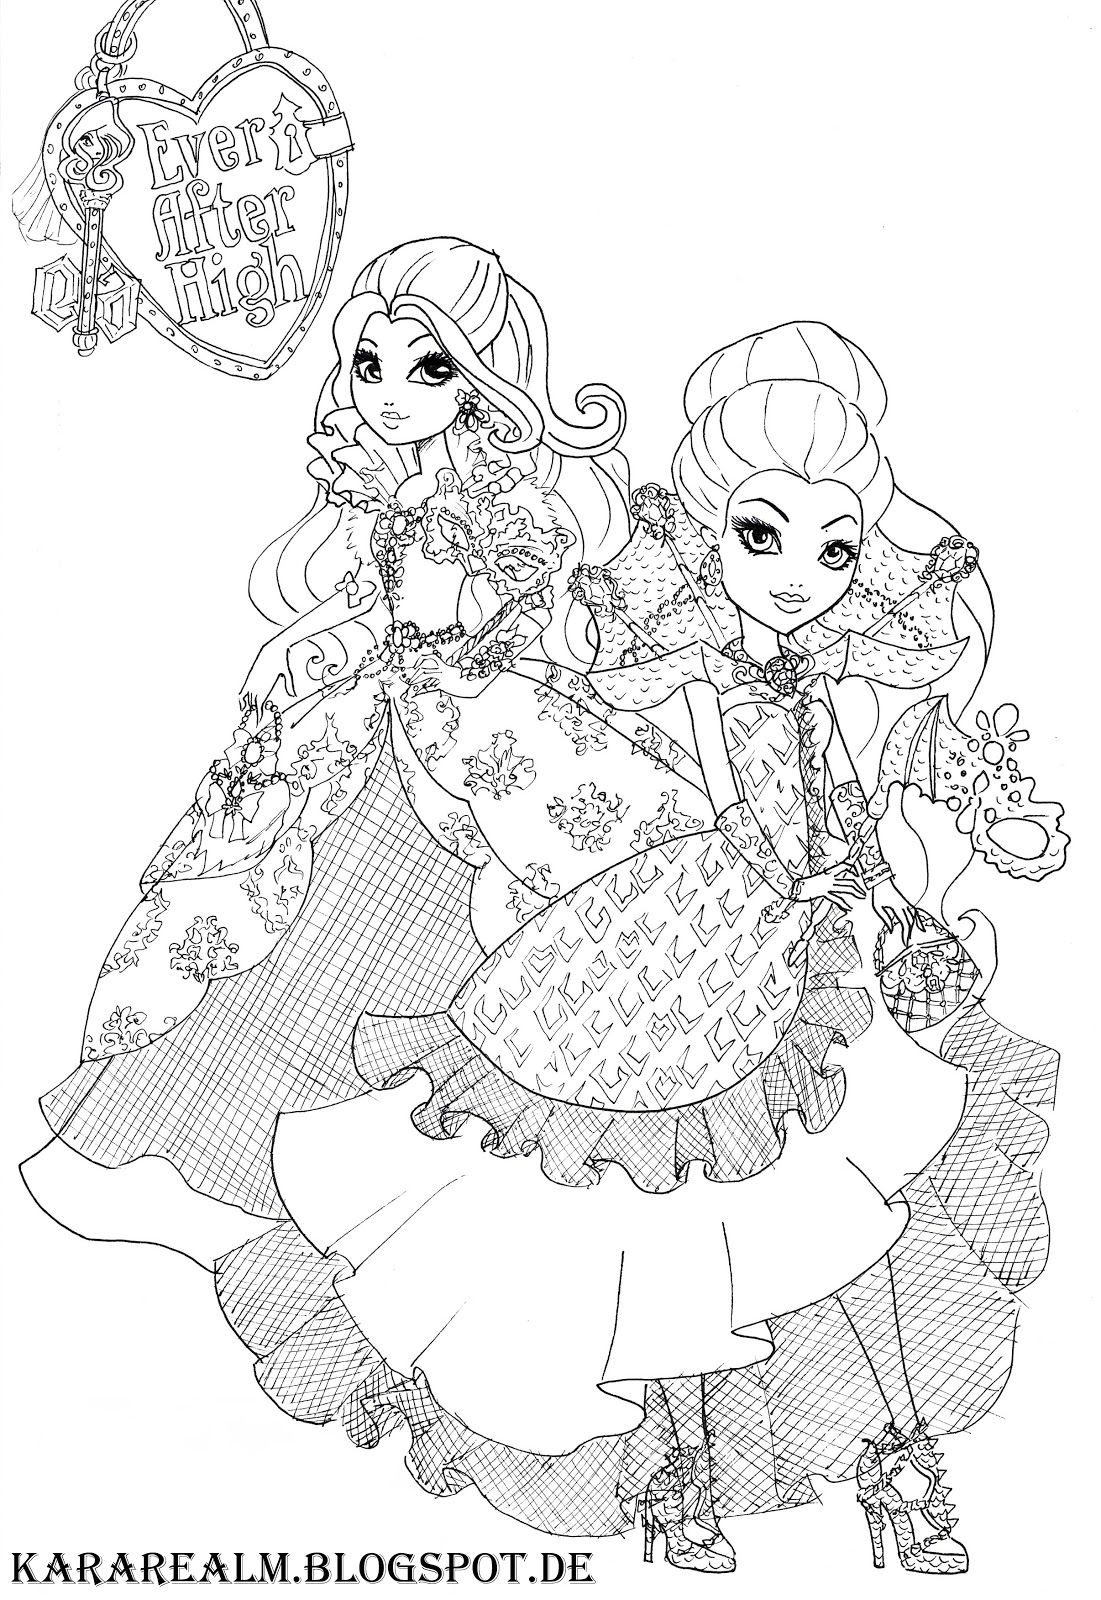 Kara Realm Ever After High Coloring Pages